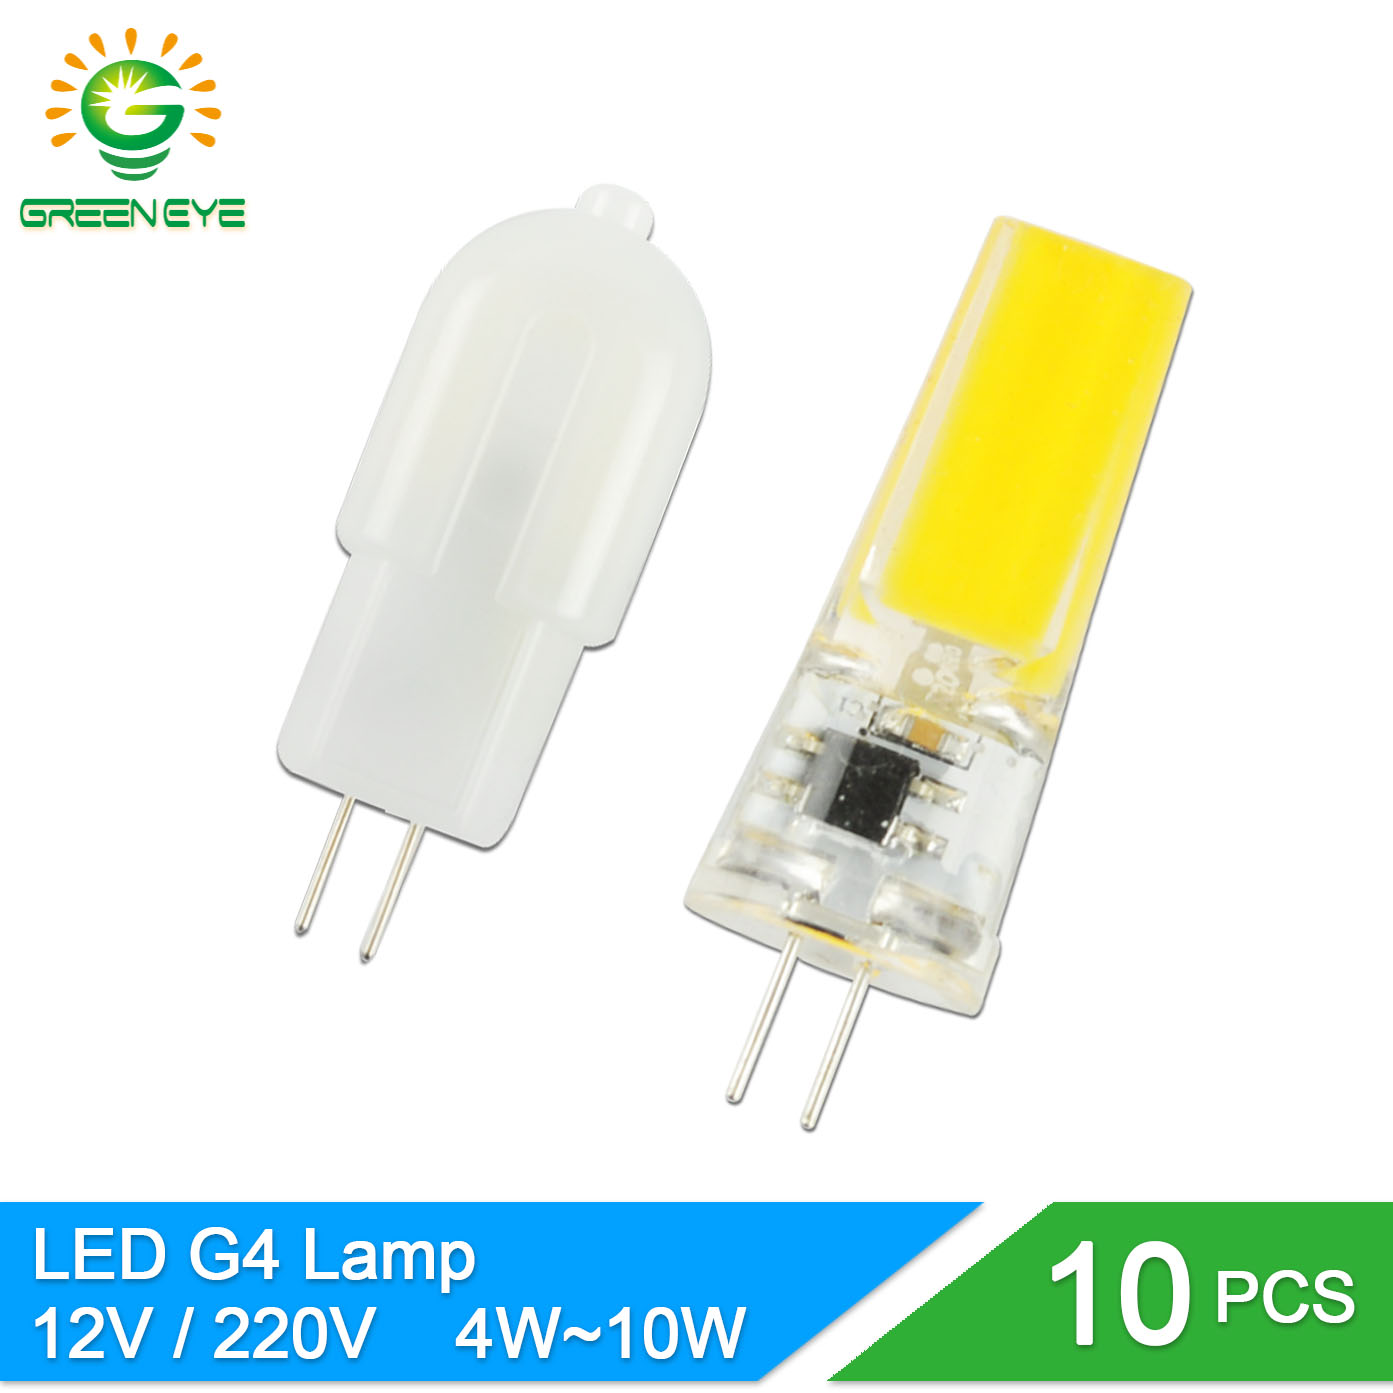 GreenEye 10Pcs Mini G4 LED Lamp AC220V / ACDC12V SMD2835 4W 6W 10W Dimmable Ampoule Lampada LED G4 Bulb Replace Halogen Crystal